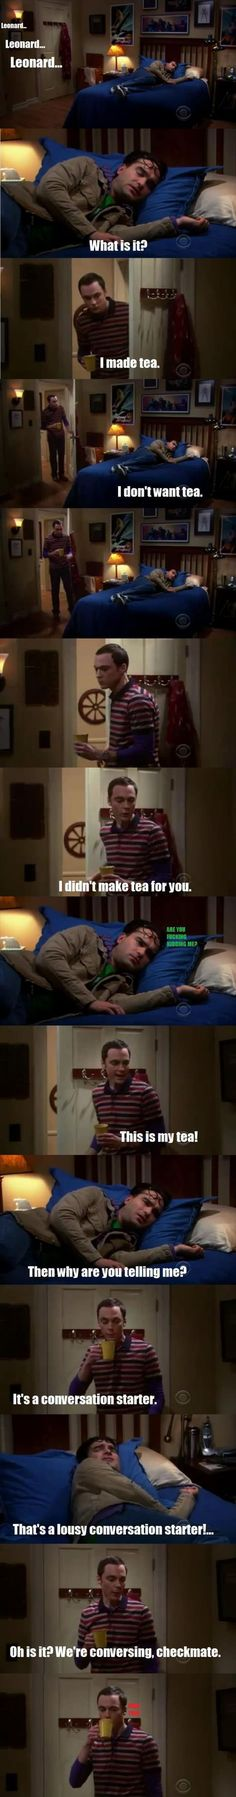 sheldon cooper, funny pictures, the big bang theory - Dump A Day Big Bang Theory, The Big Theory, Best Tv, The Best, The Big Bang Therory, Movies Quotes, Funny Quotes, Funny Memes, Funny Picture Gallery